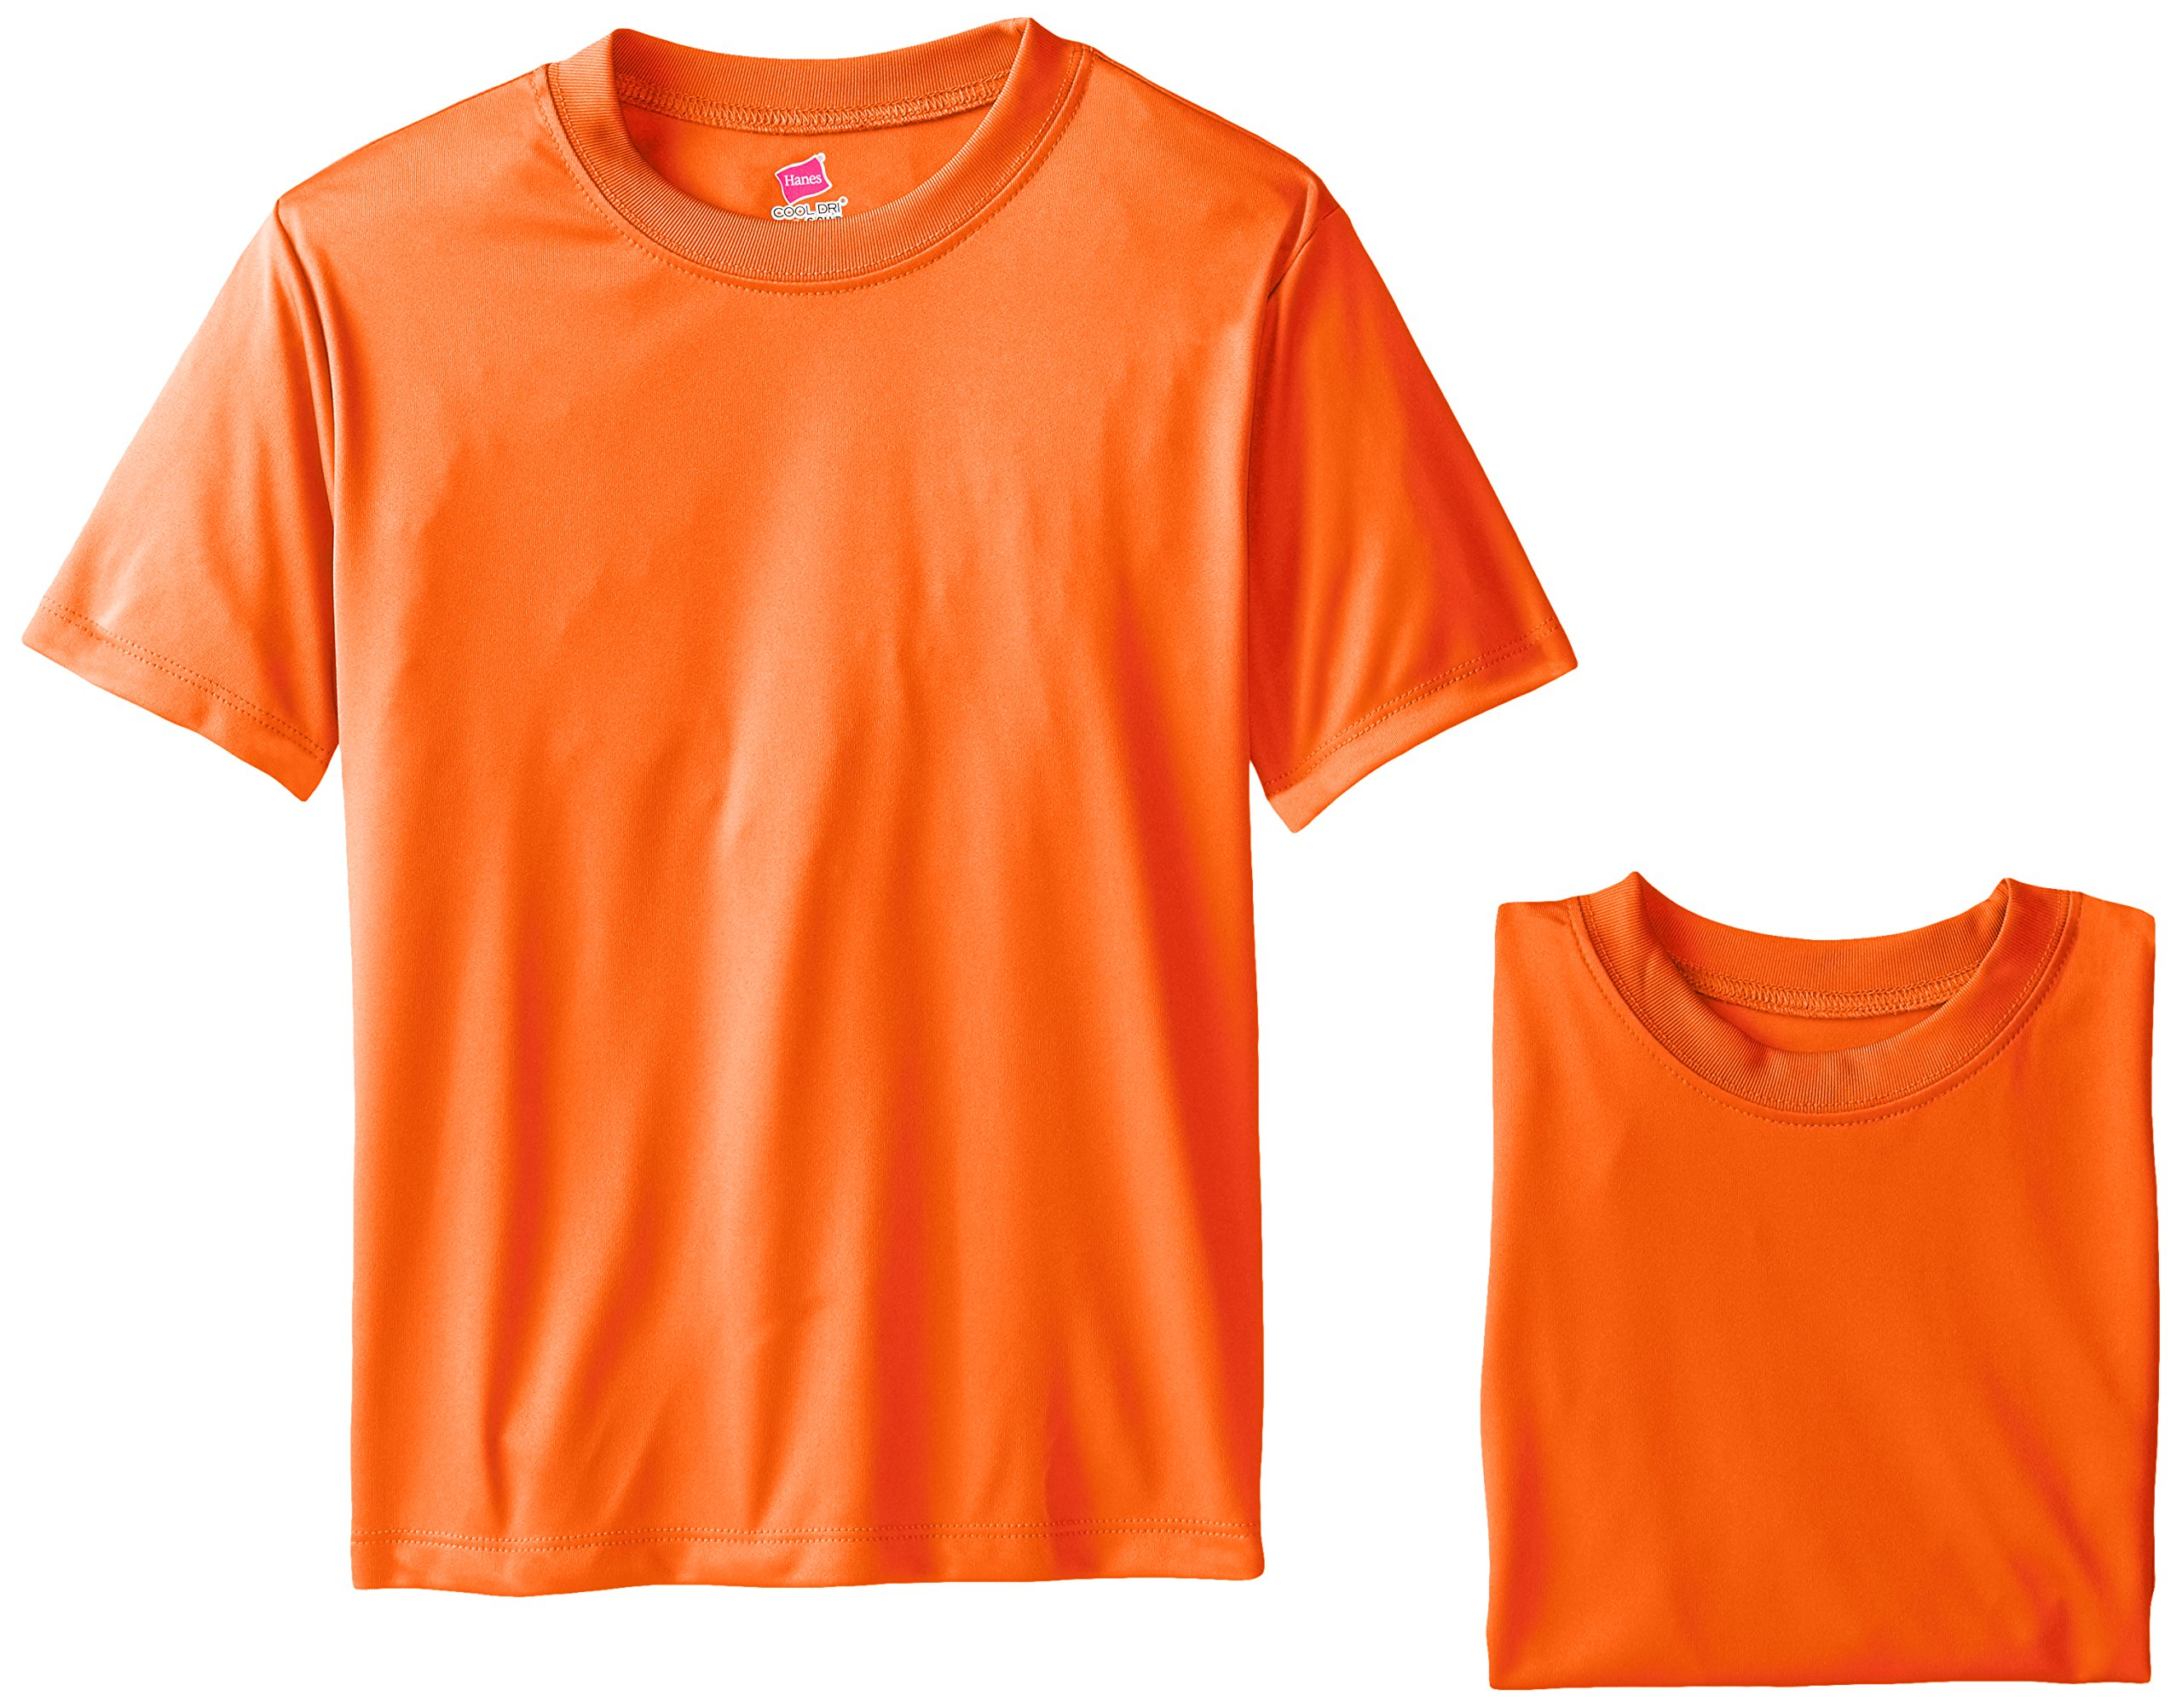 Hanes Big Boys' Cool DRI Performance T-Shirt Pack of 3, Safety Orange, Large